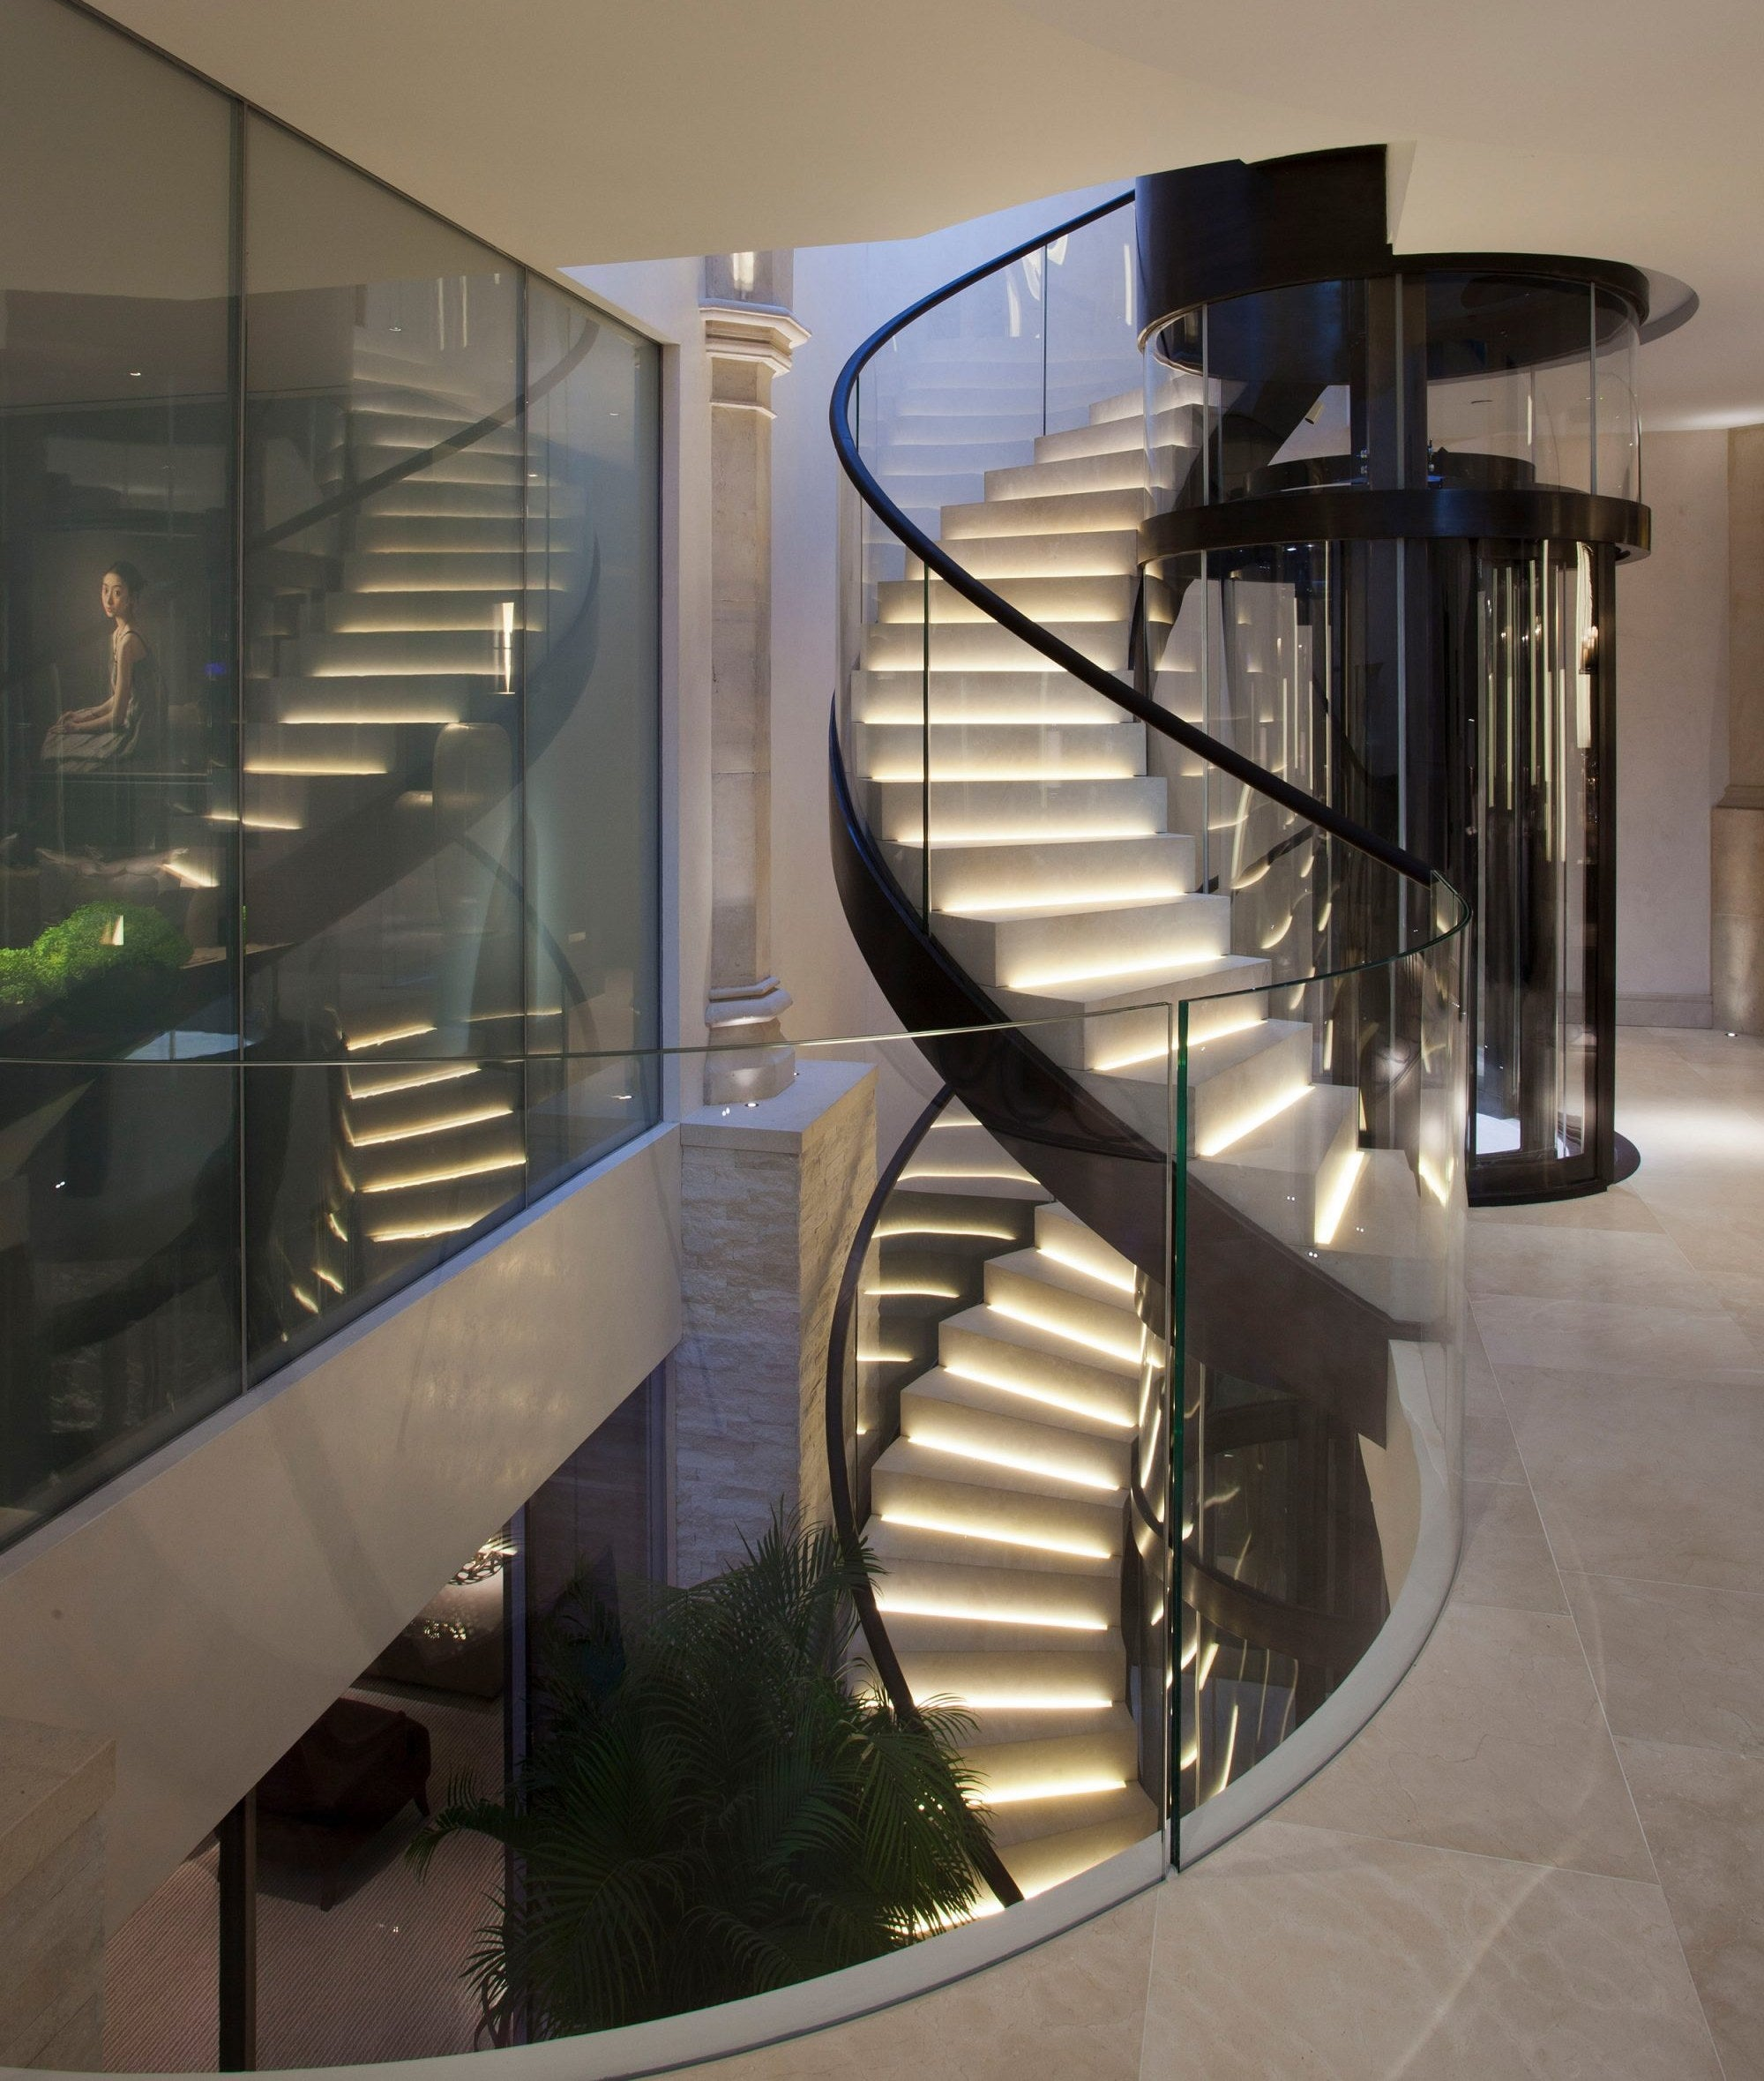 Beautiful Staircase Ideas For Your Home - spiral staircase - LuxDeco.com Style Guide